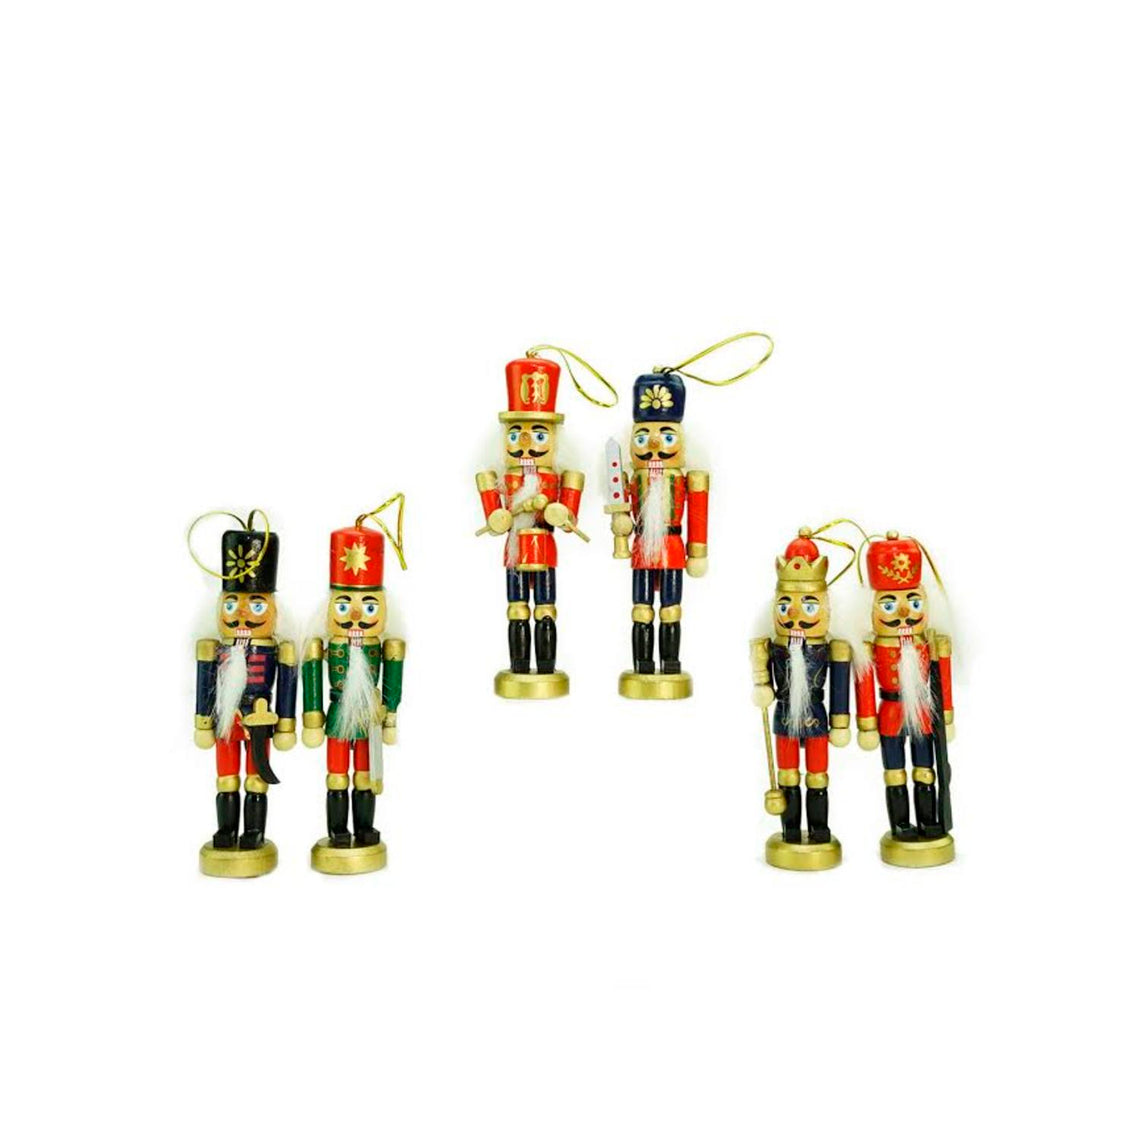 Pack Of 6 Red  Blue And Gold Wooden Christmas Nutcracker Ornaments 5